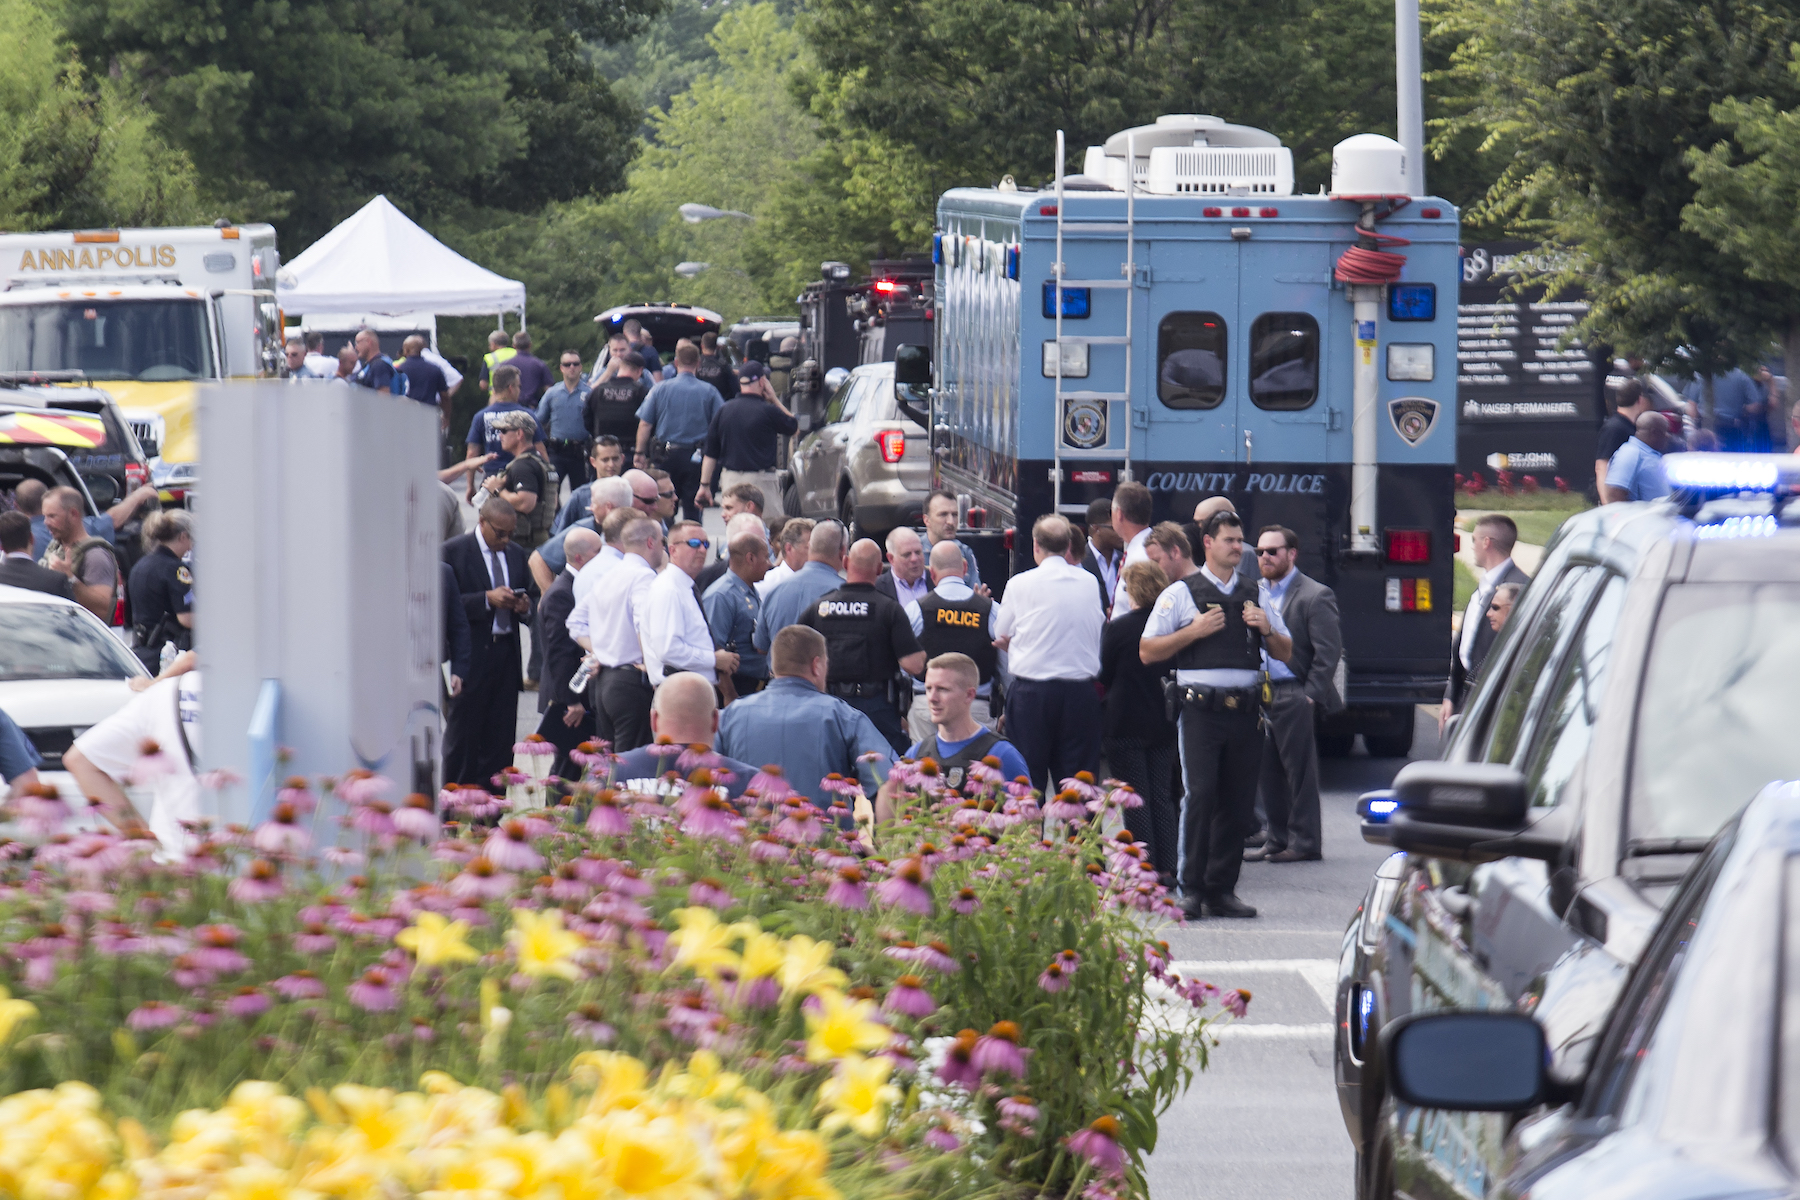 <div class='meta'><div class='origin-logo' data-origin='Creative Content'></div><span class='caption-text' data-credit='Saul Loeb/AFP/Getty Images'>Emergency personnel congregate outside the Capital-Gazette newspaper building on June 28, 2018 in Annapolis, Maryland.</span></div>